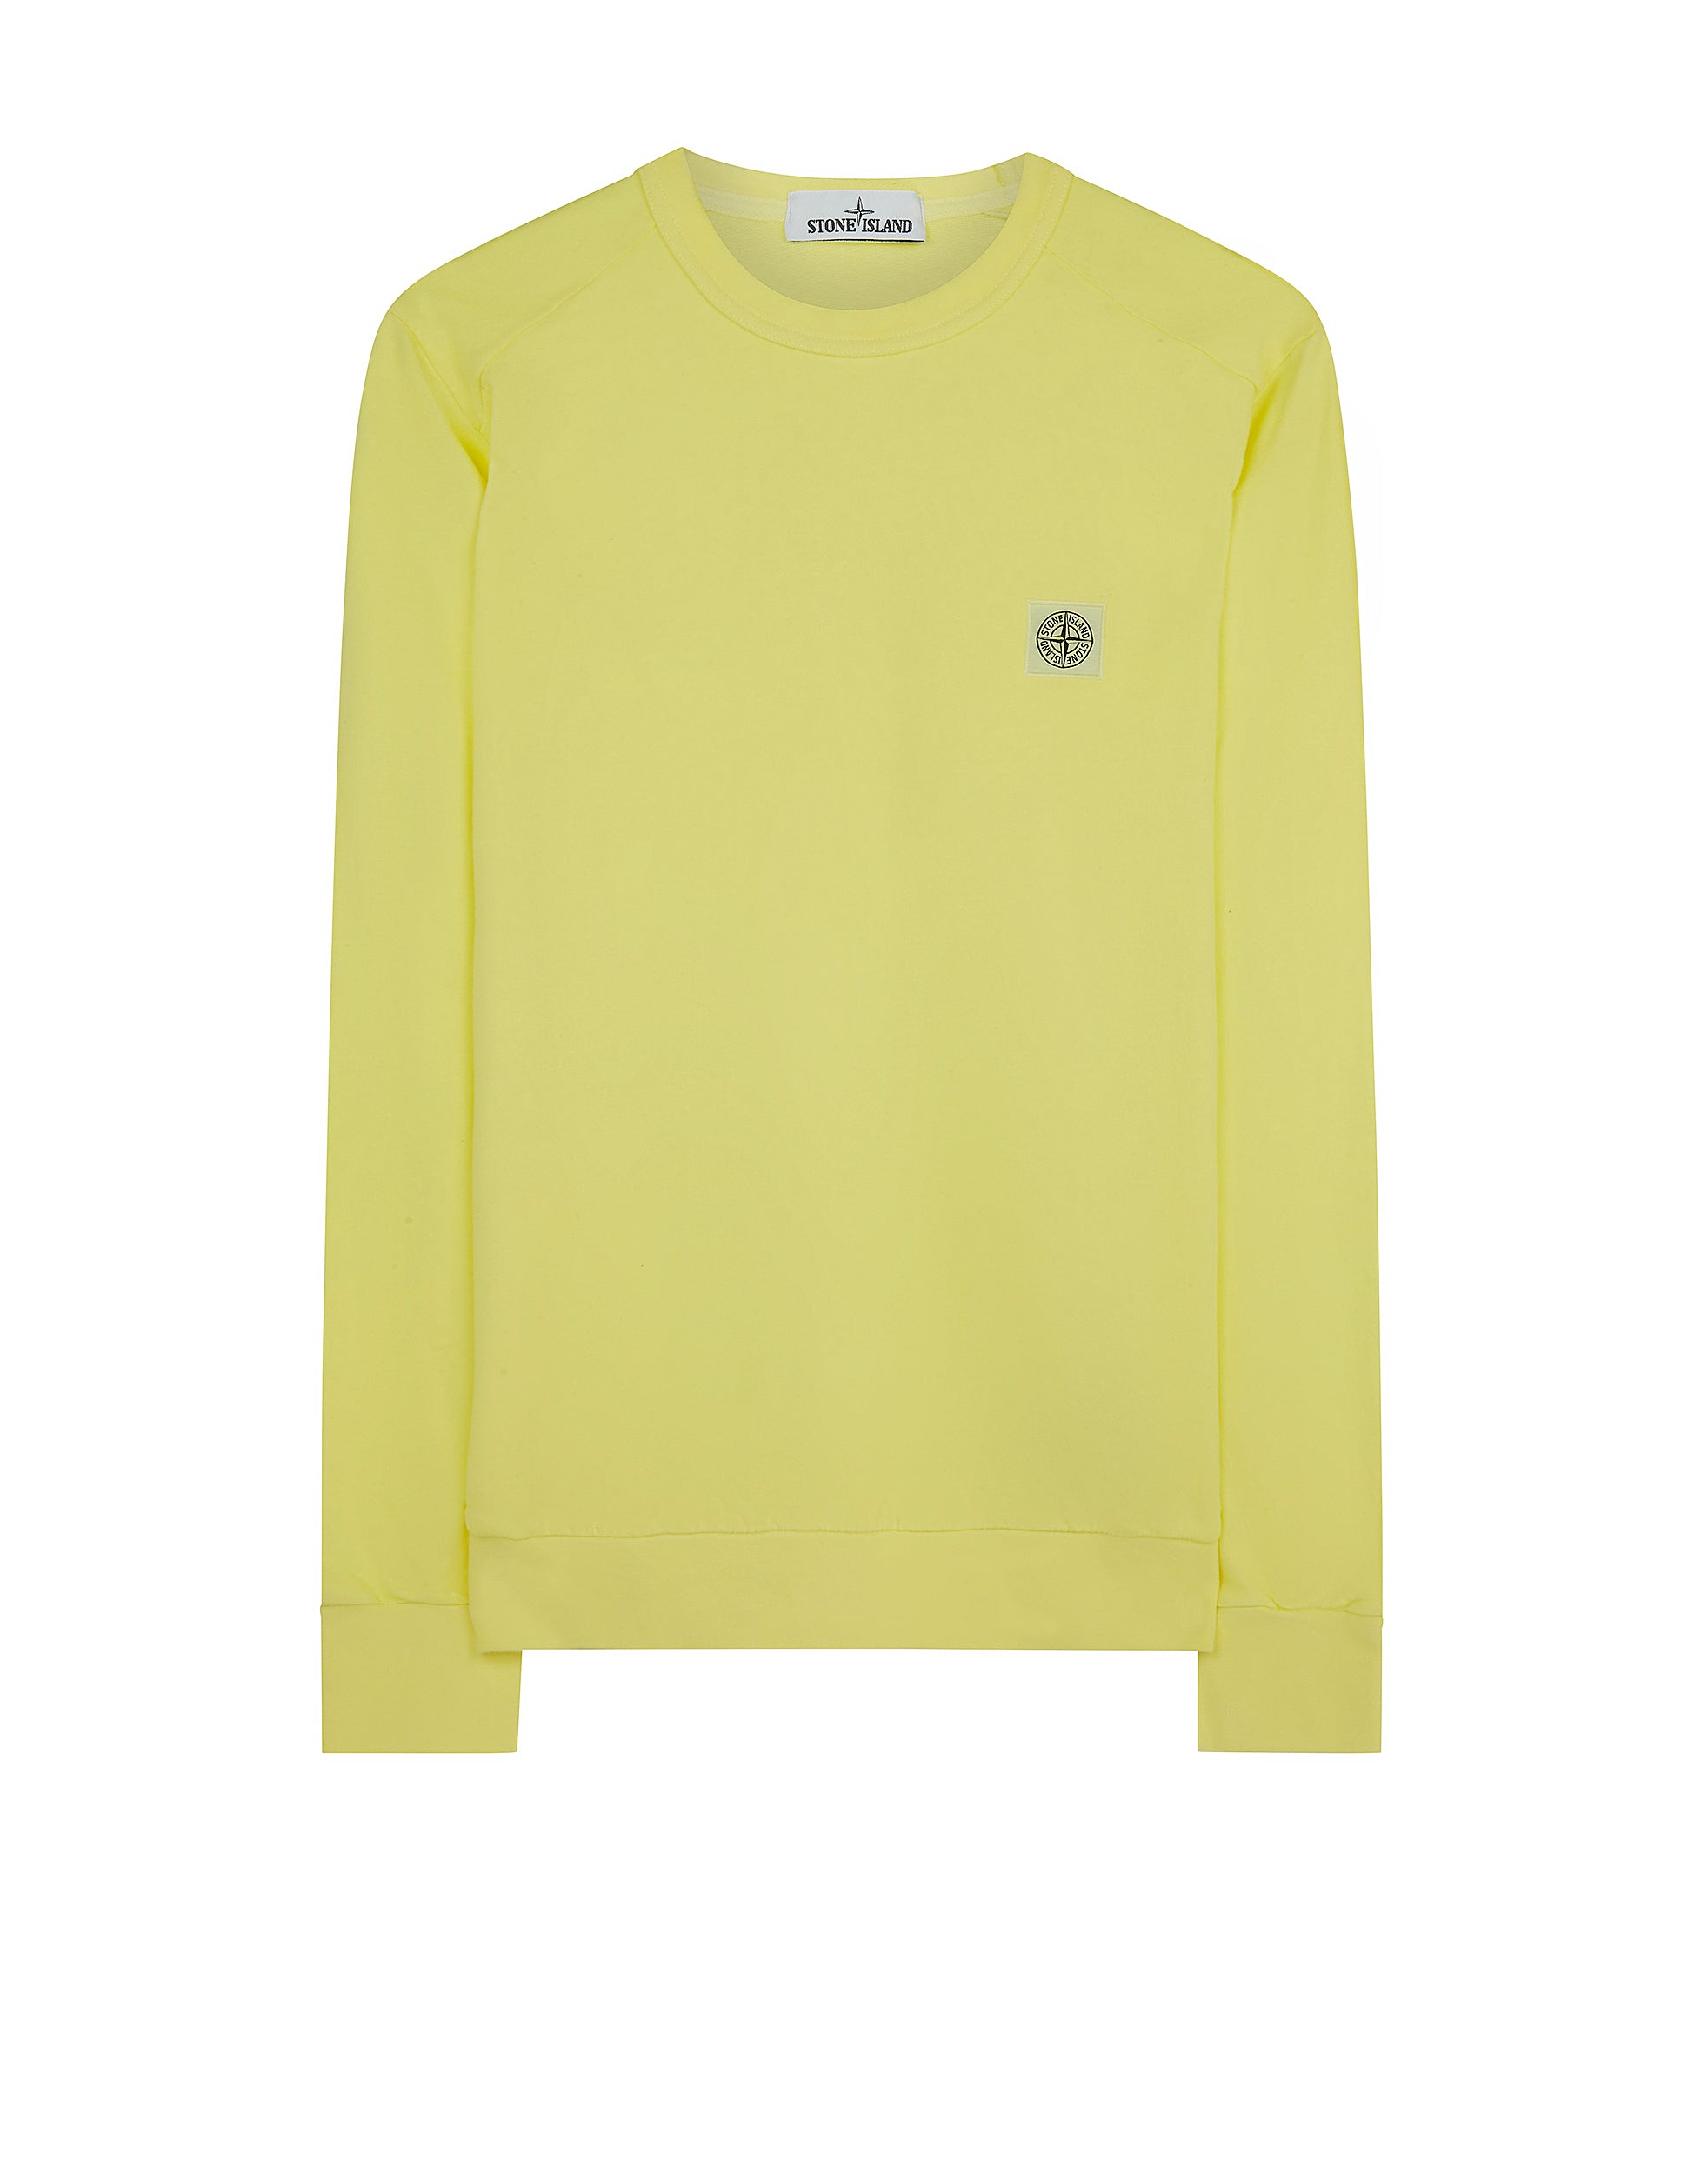 62339 Lightweight Sweatshirt in Yellow